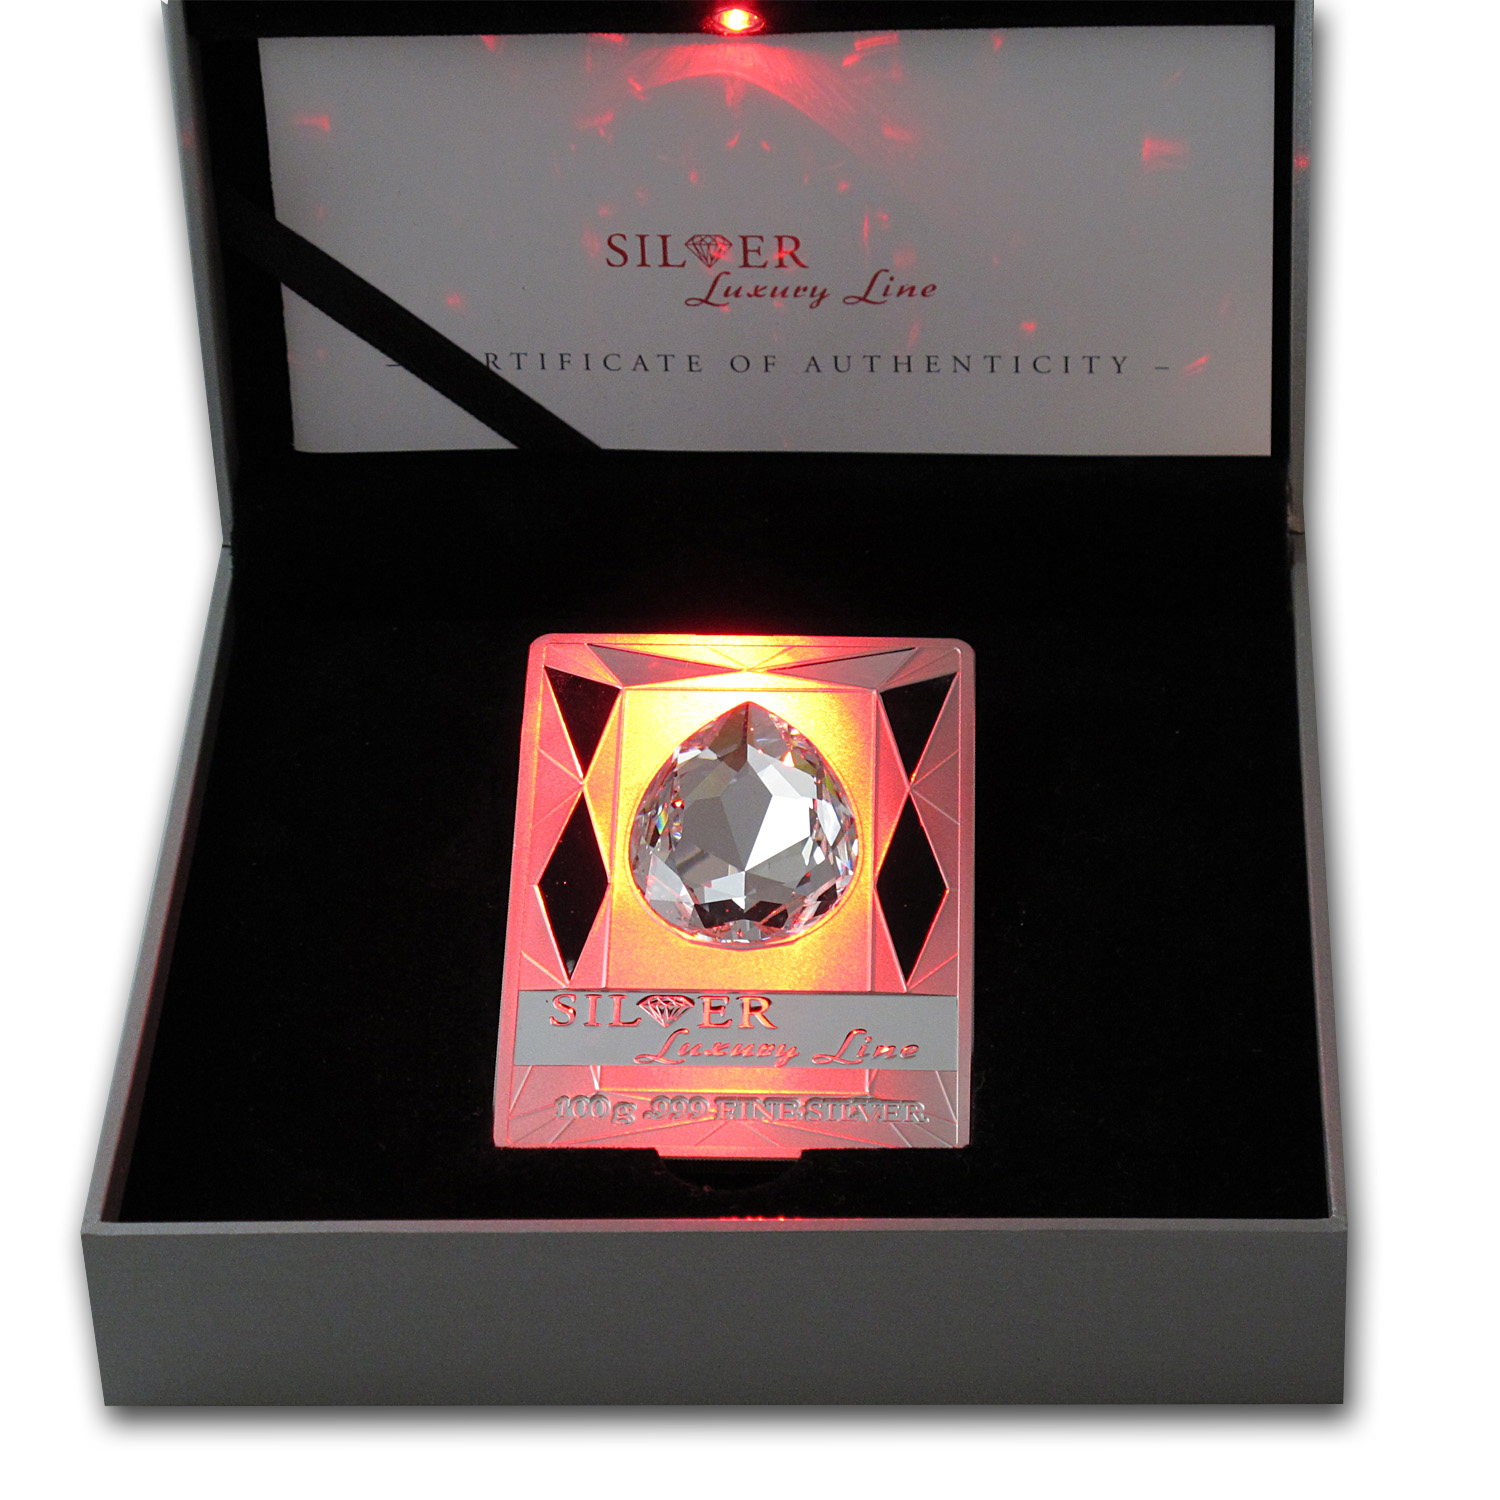 2013 Cook Islands Proof Silver $20 Luxury Line Swarovski Crystal